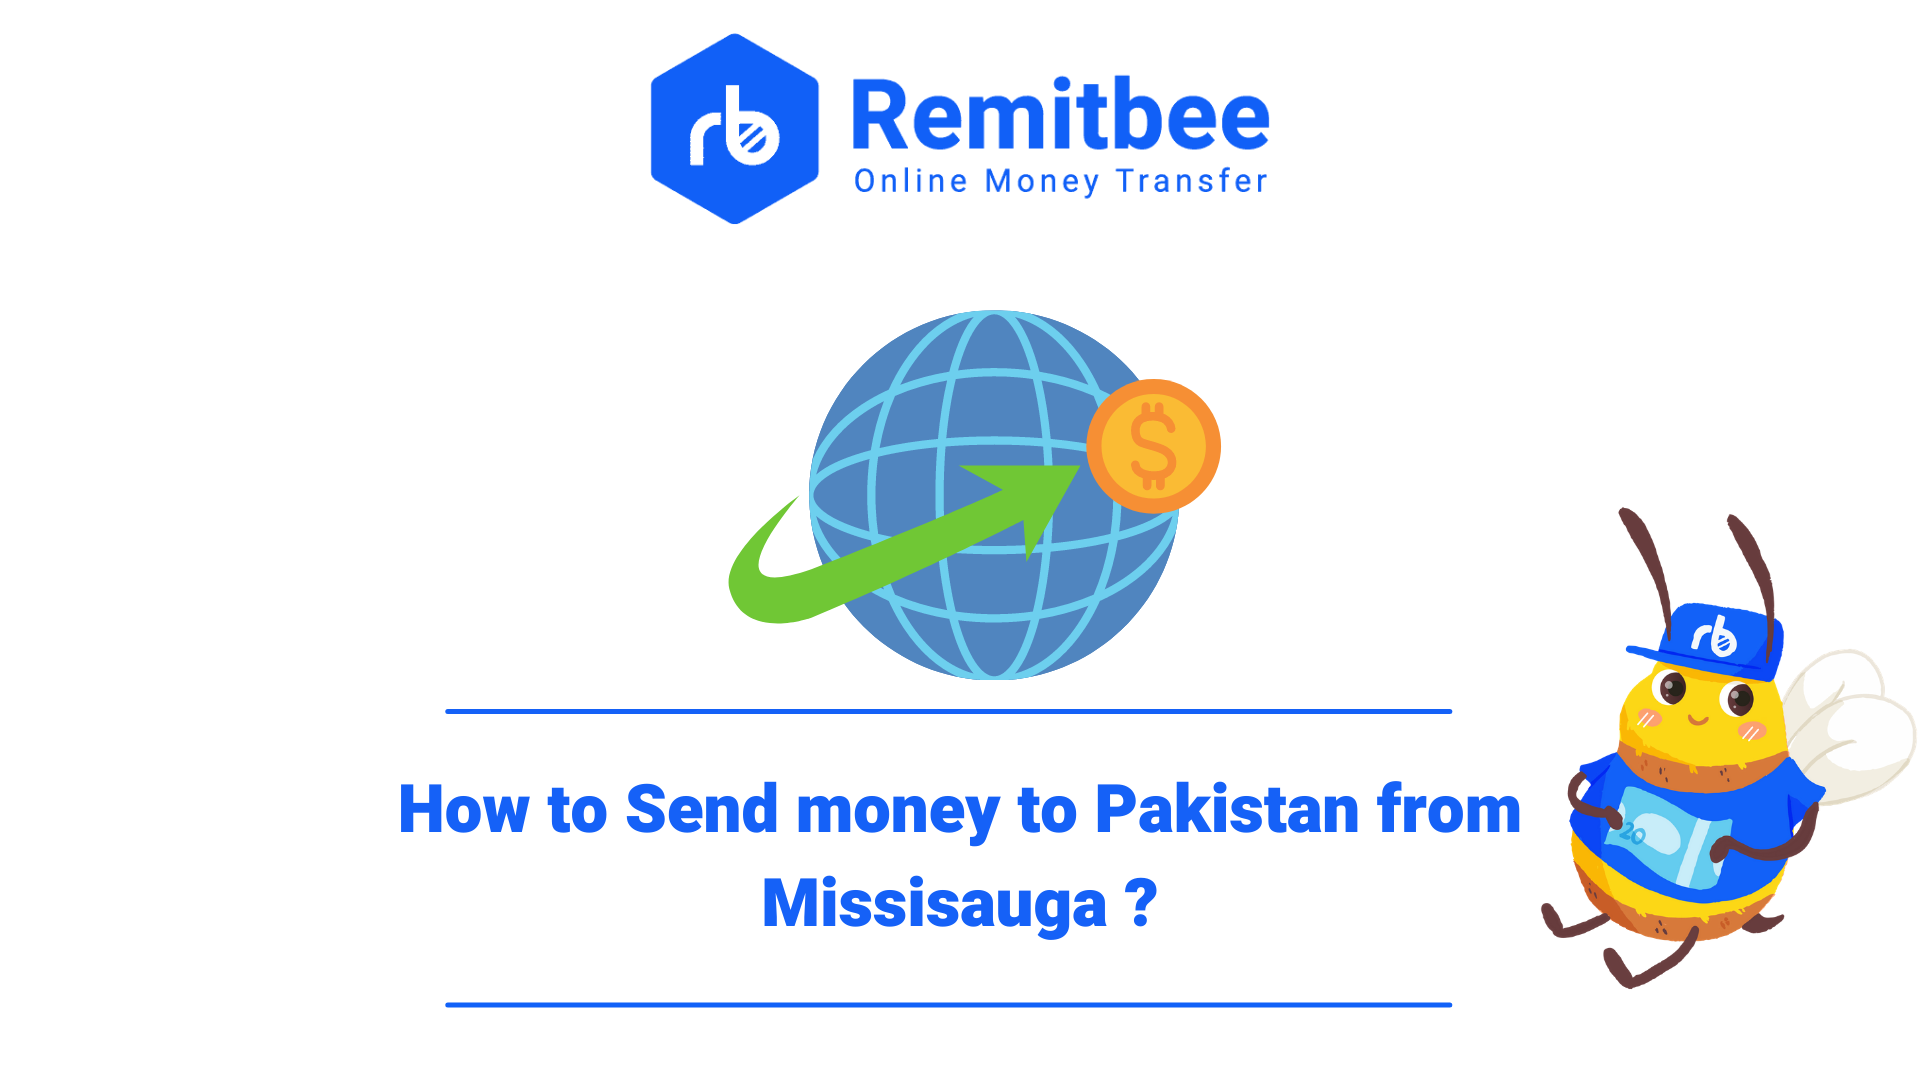 How to Send Money to Pakistan from Mississauga with Remitbee!